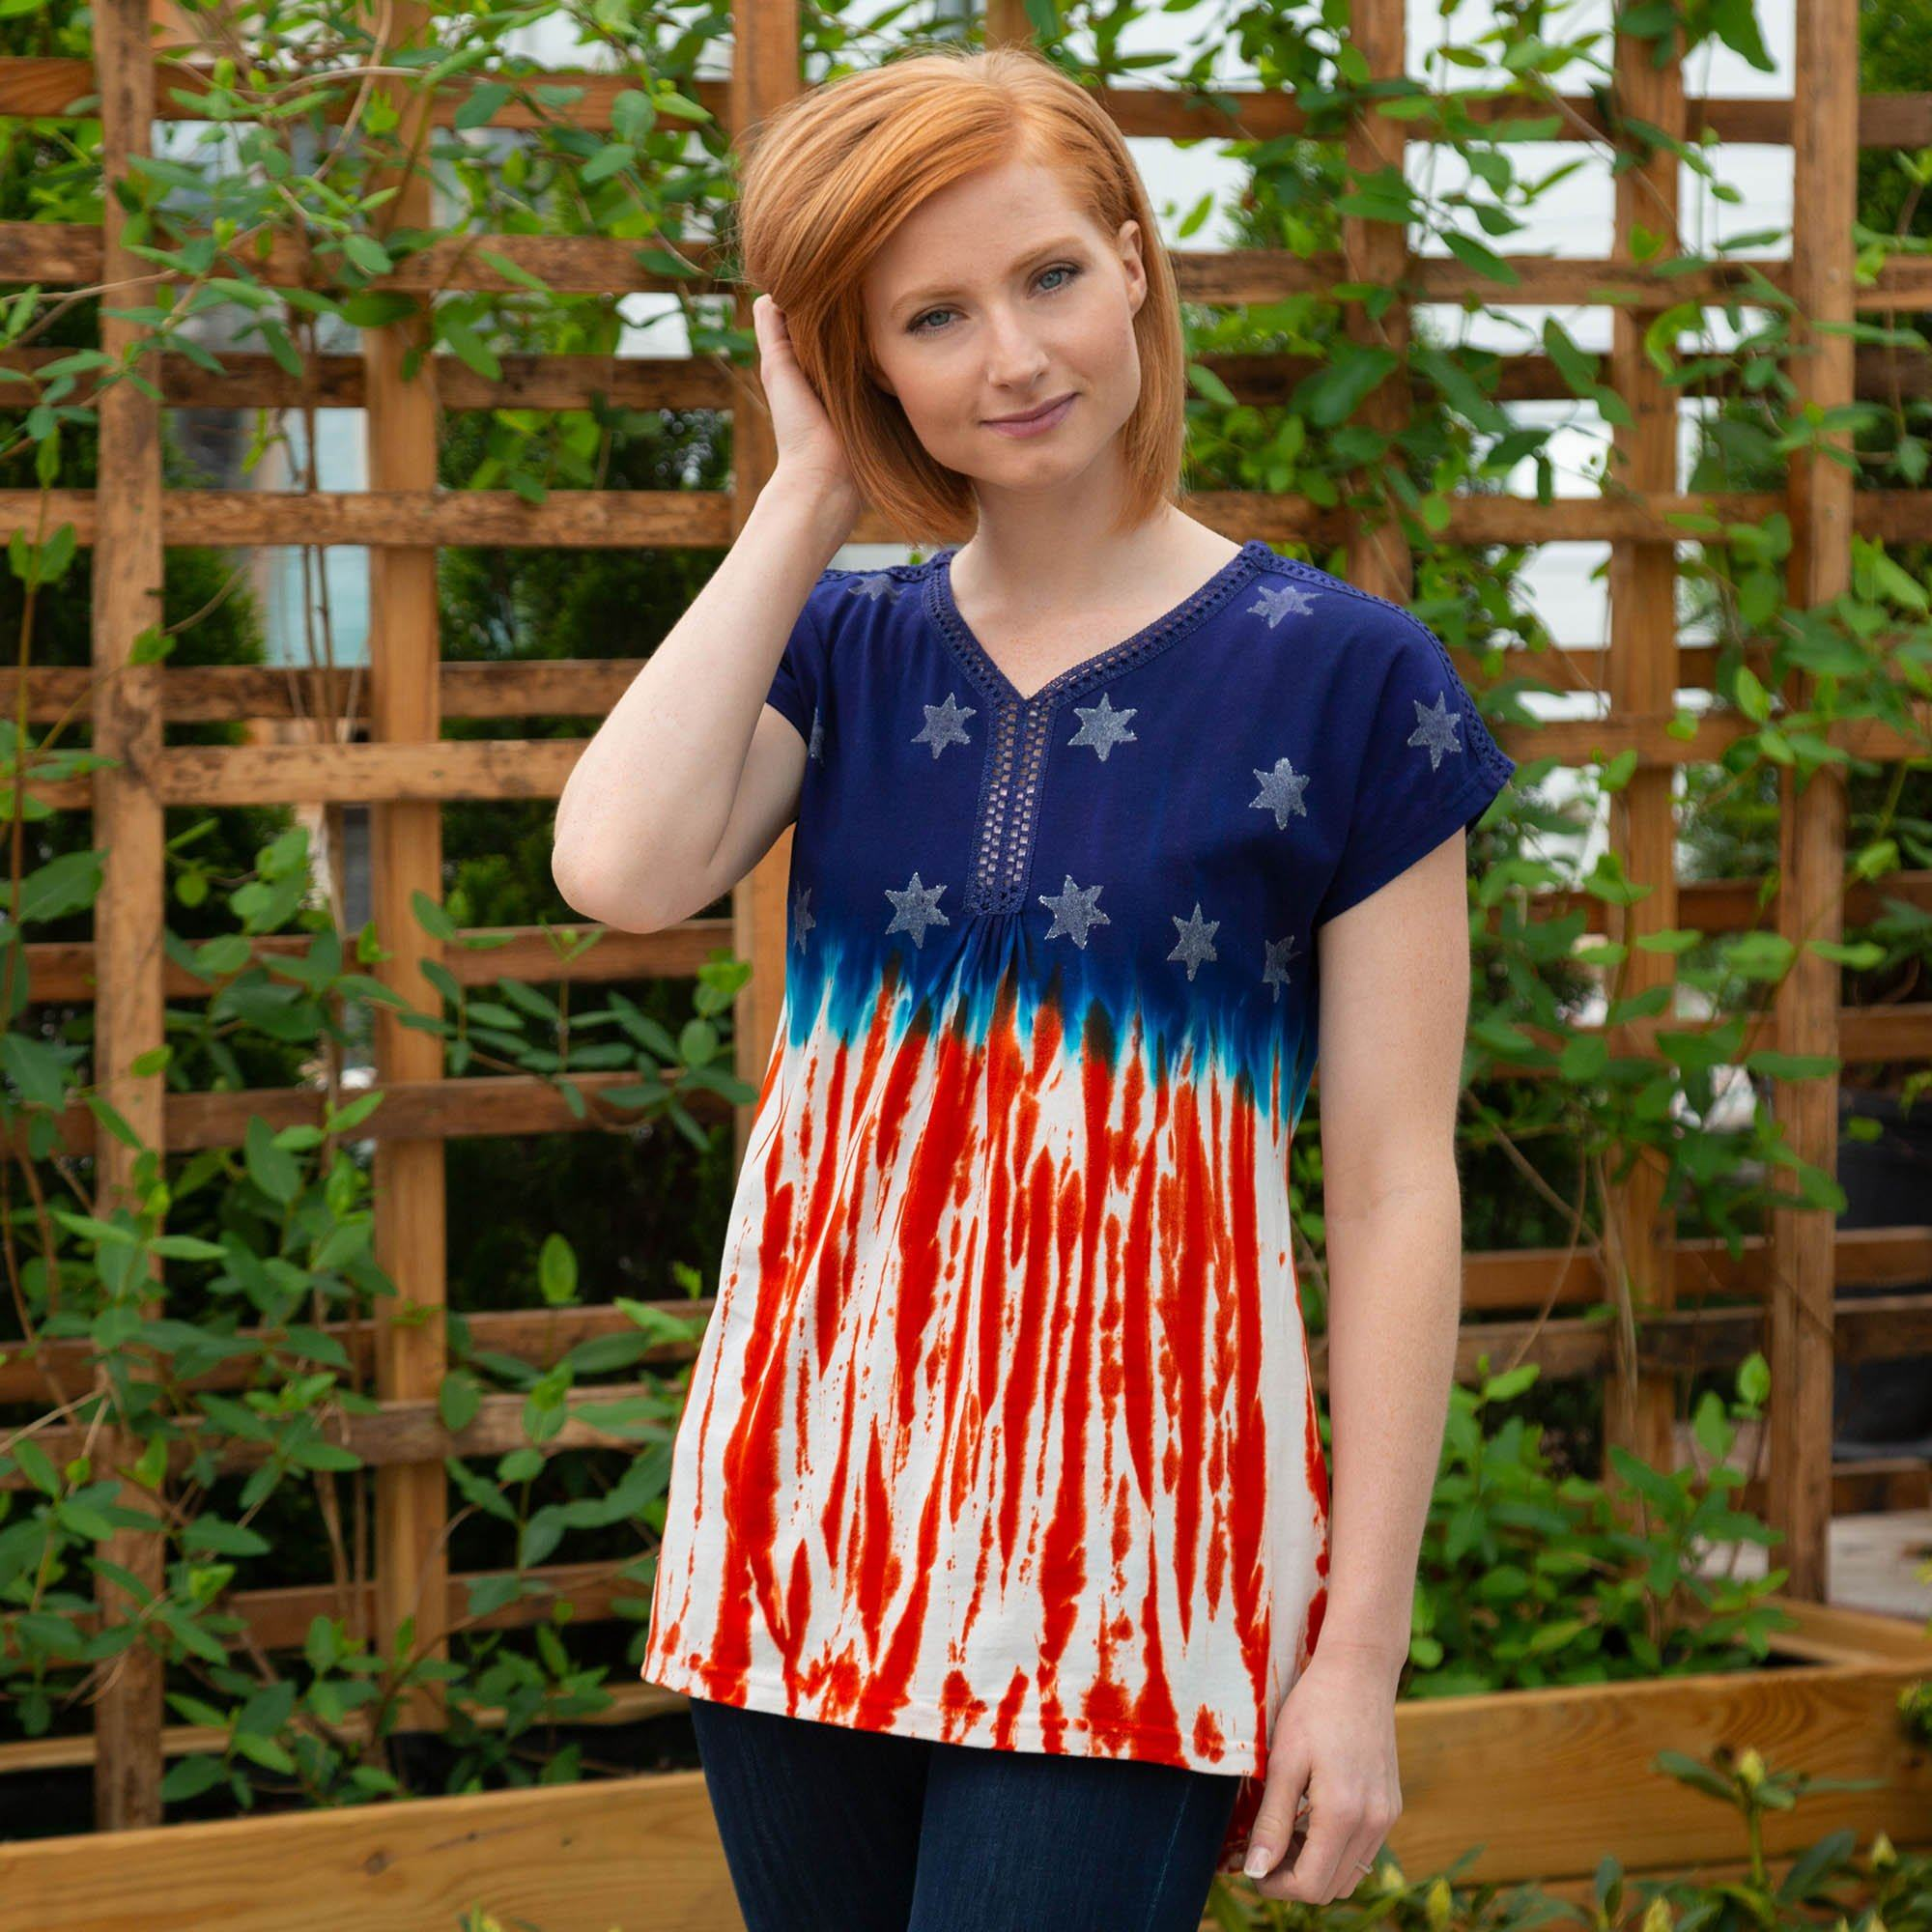 Shop our Red, White & Blue Sale